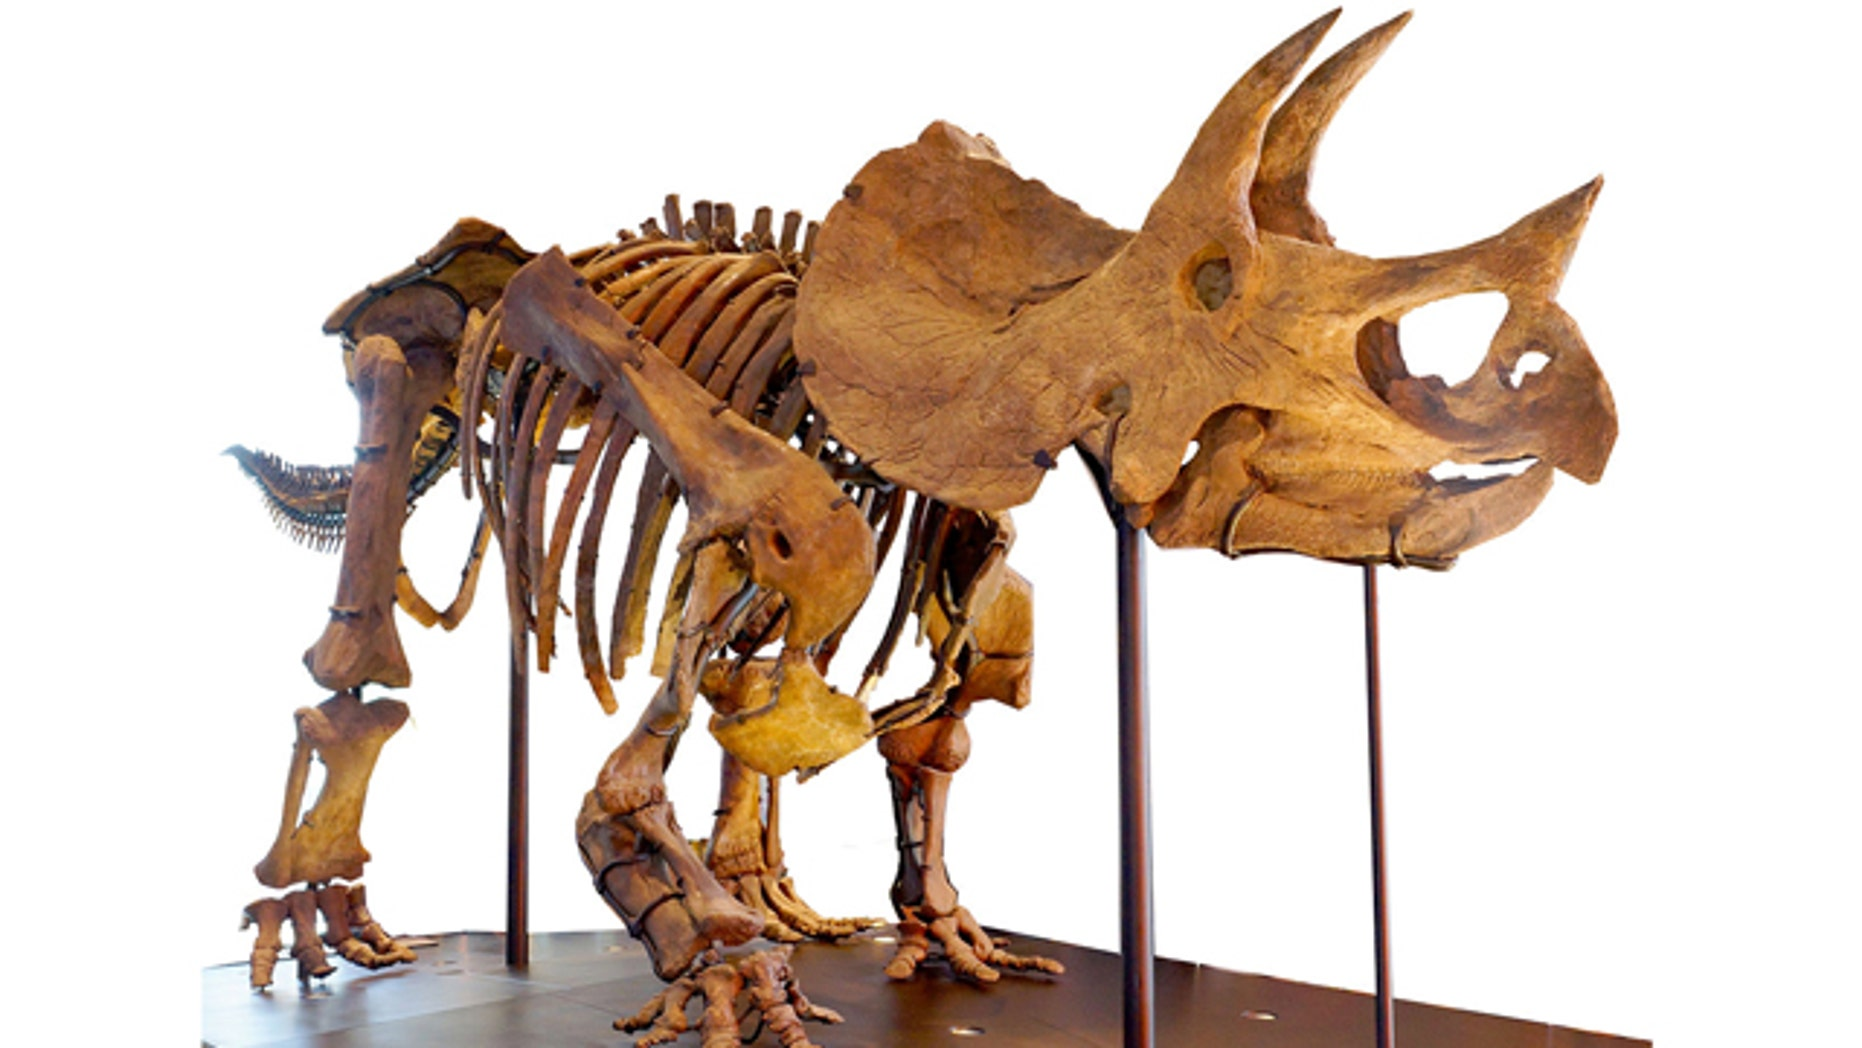 A Triceratops skeleton is pictured here at the Natural History Museum of Los Angeles County.